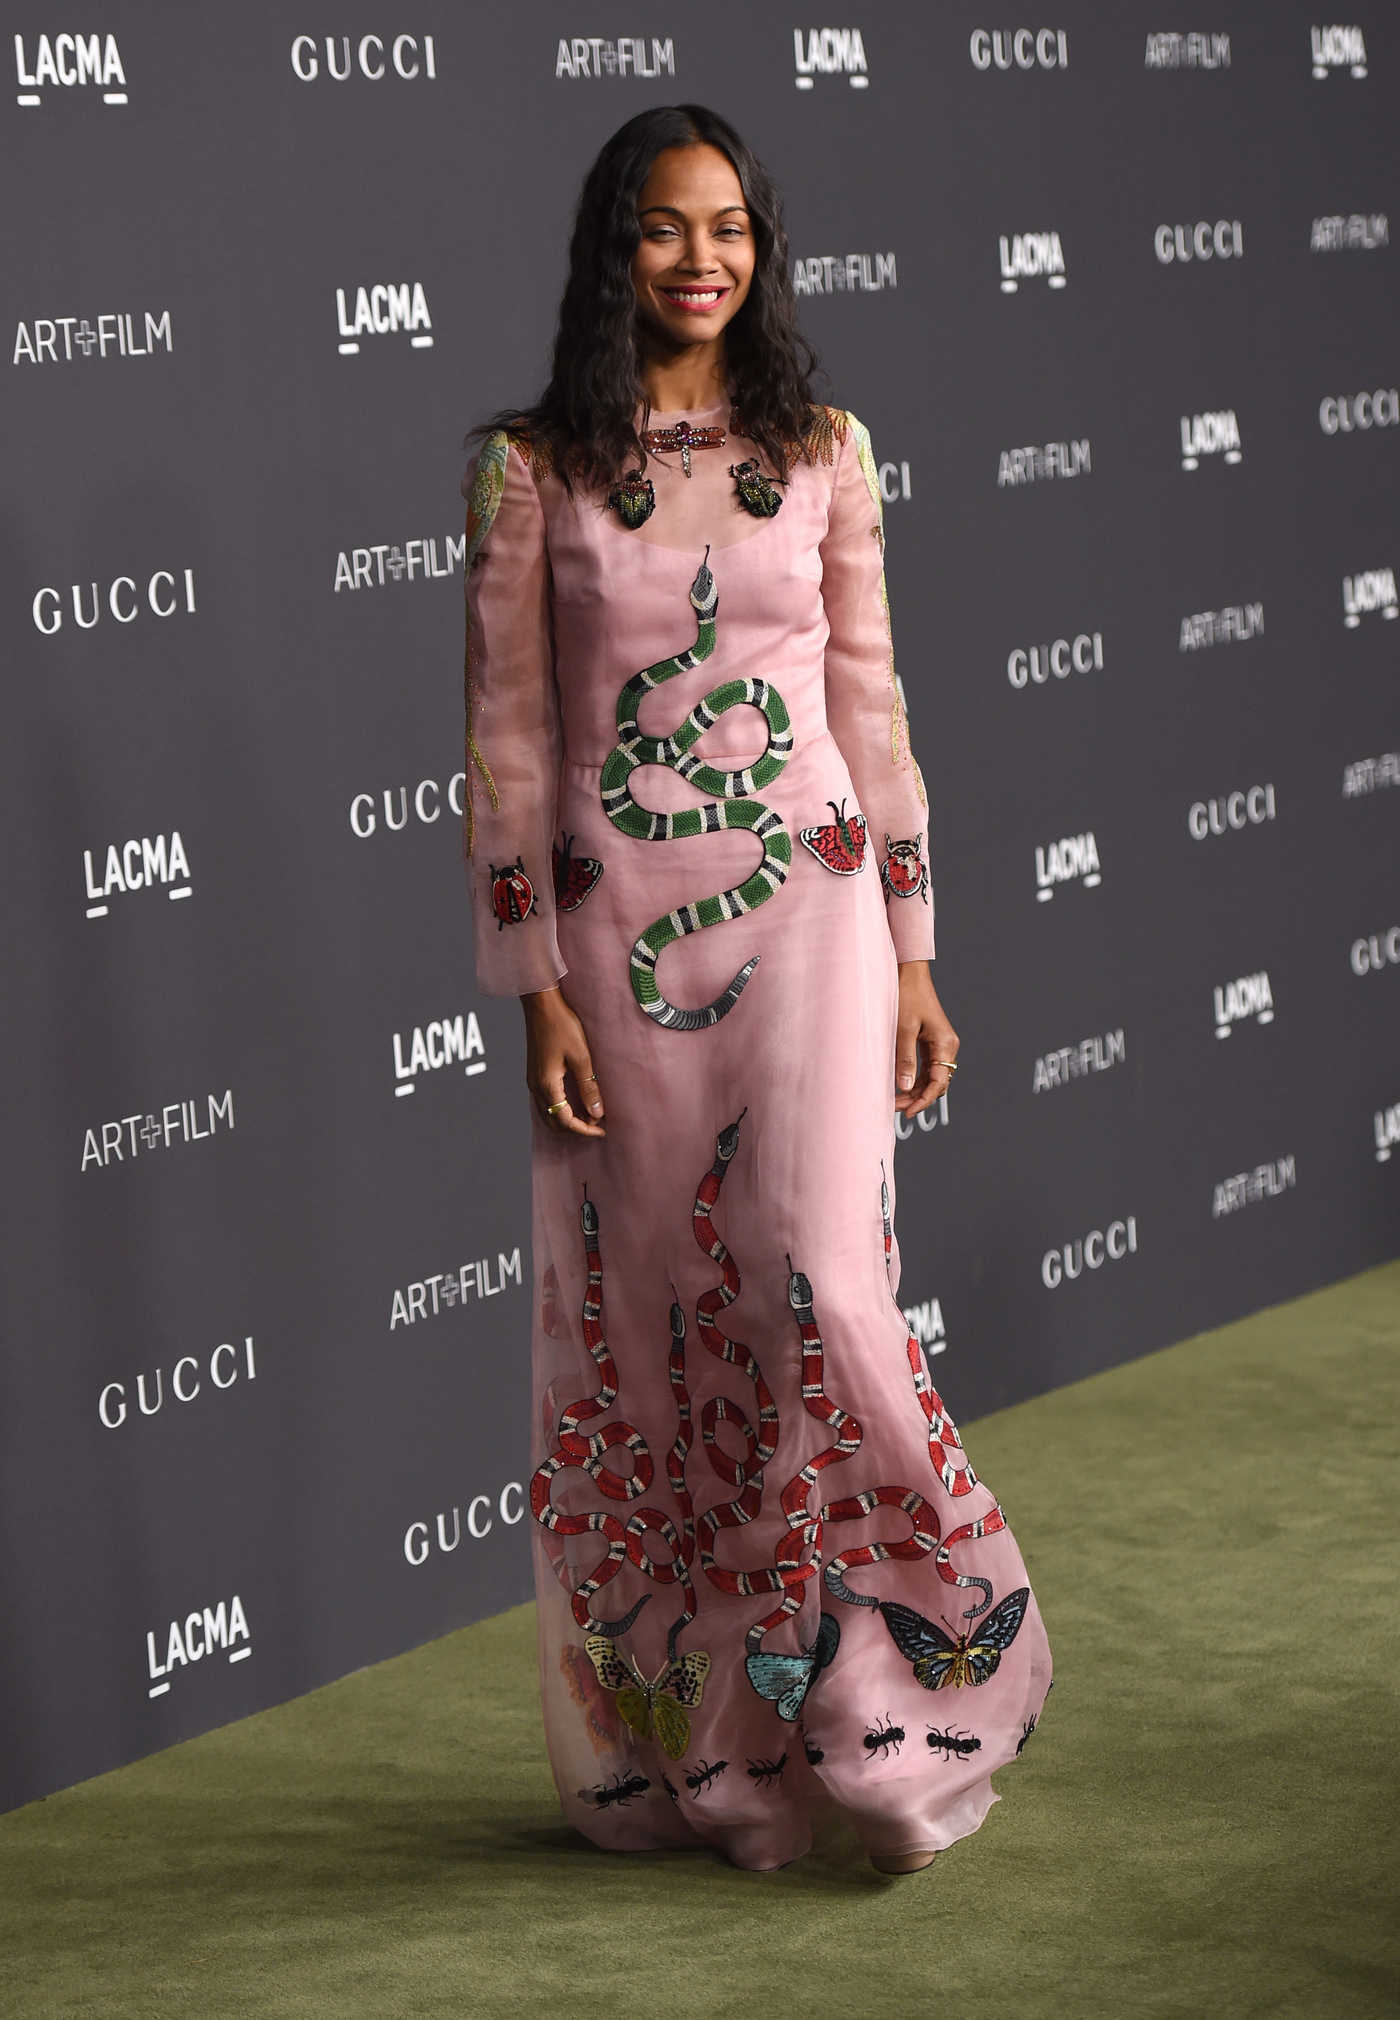 Zoe Saldana at the LACMA Art and Film Gala in Los Angeles 10/29/2016